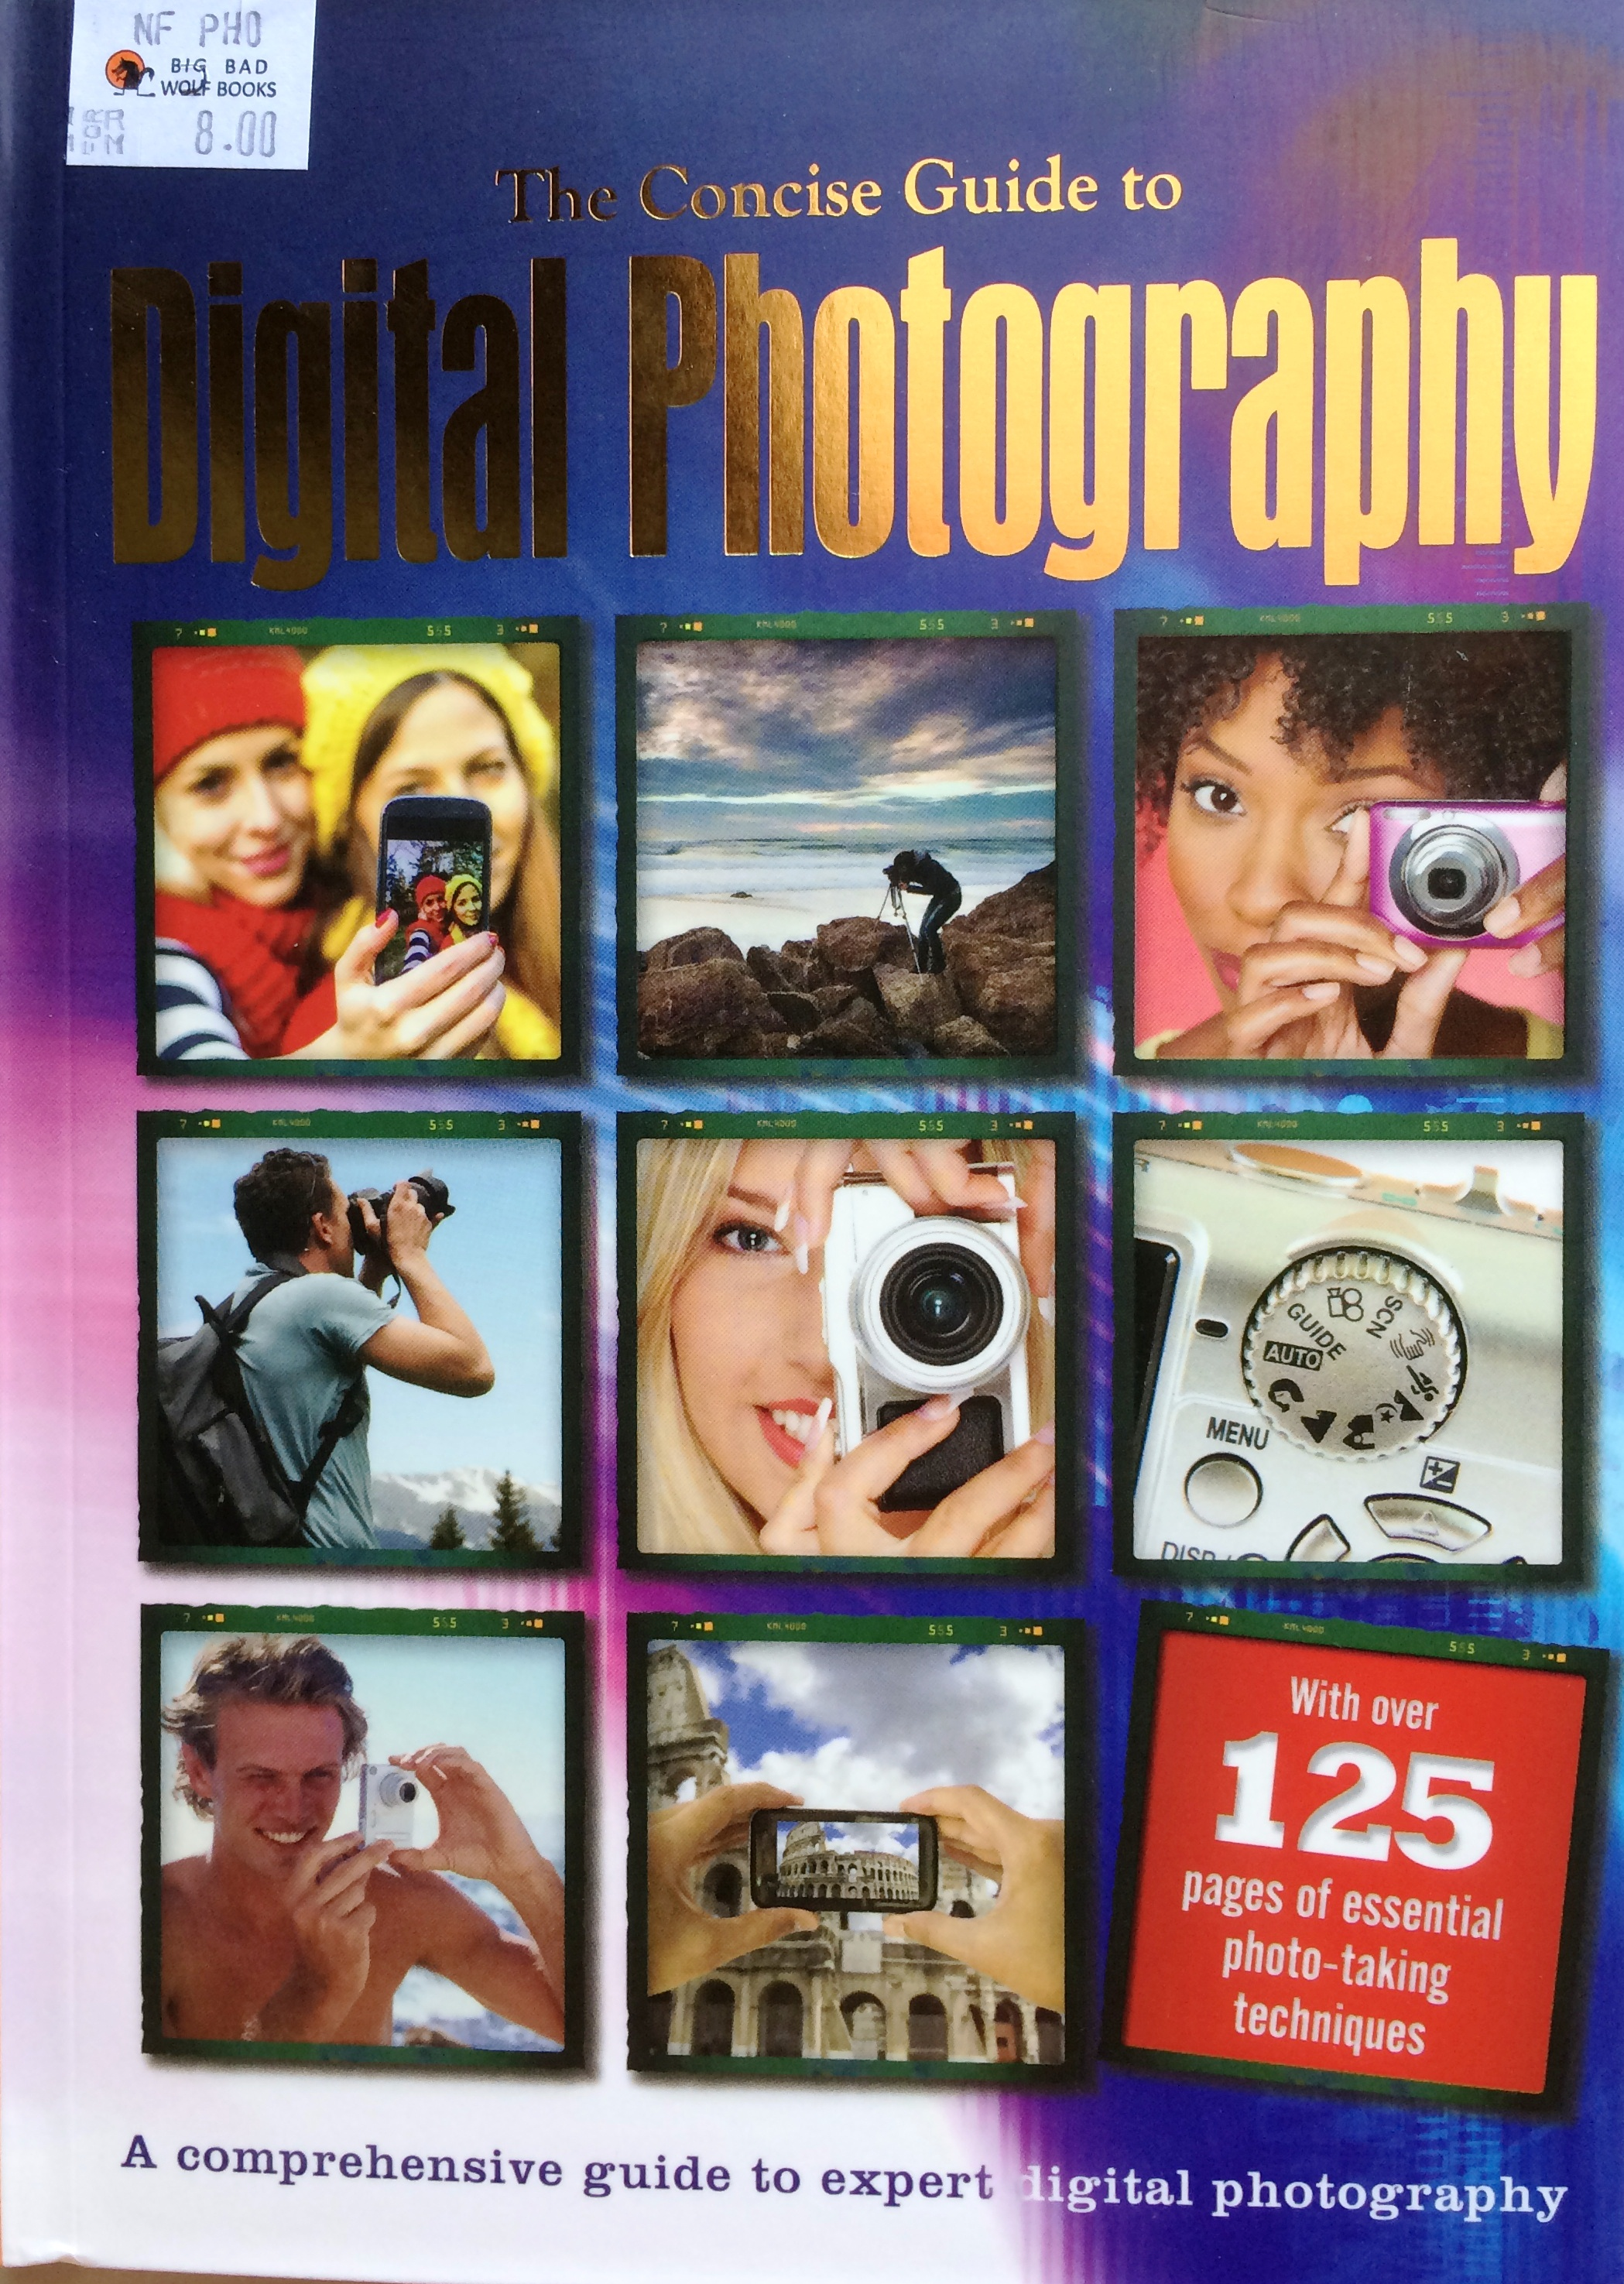 The Concise Guide to Digital Photography